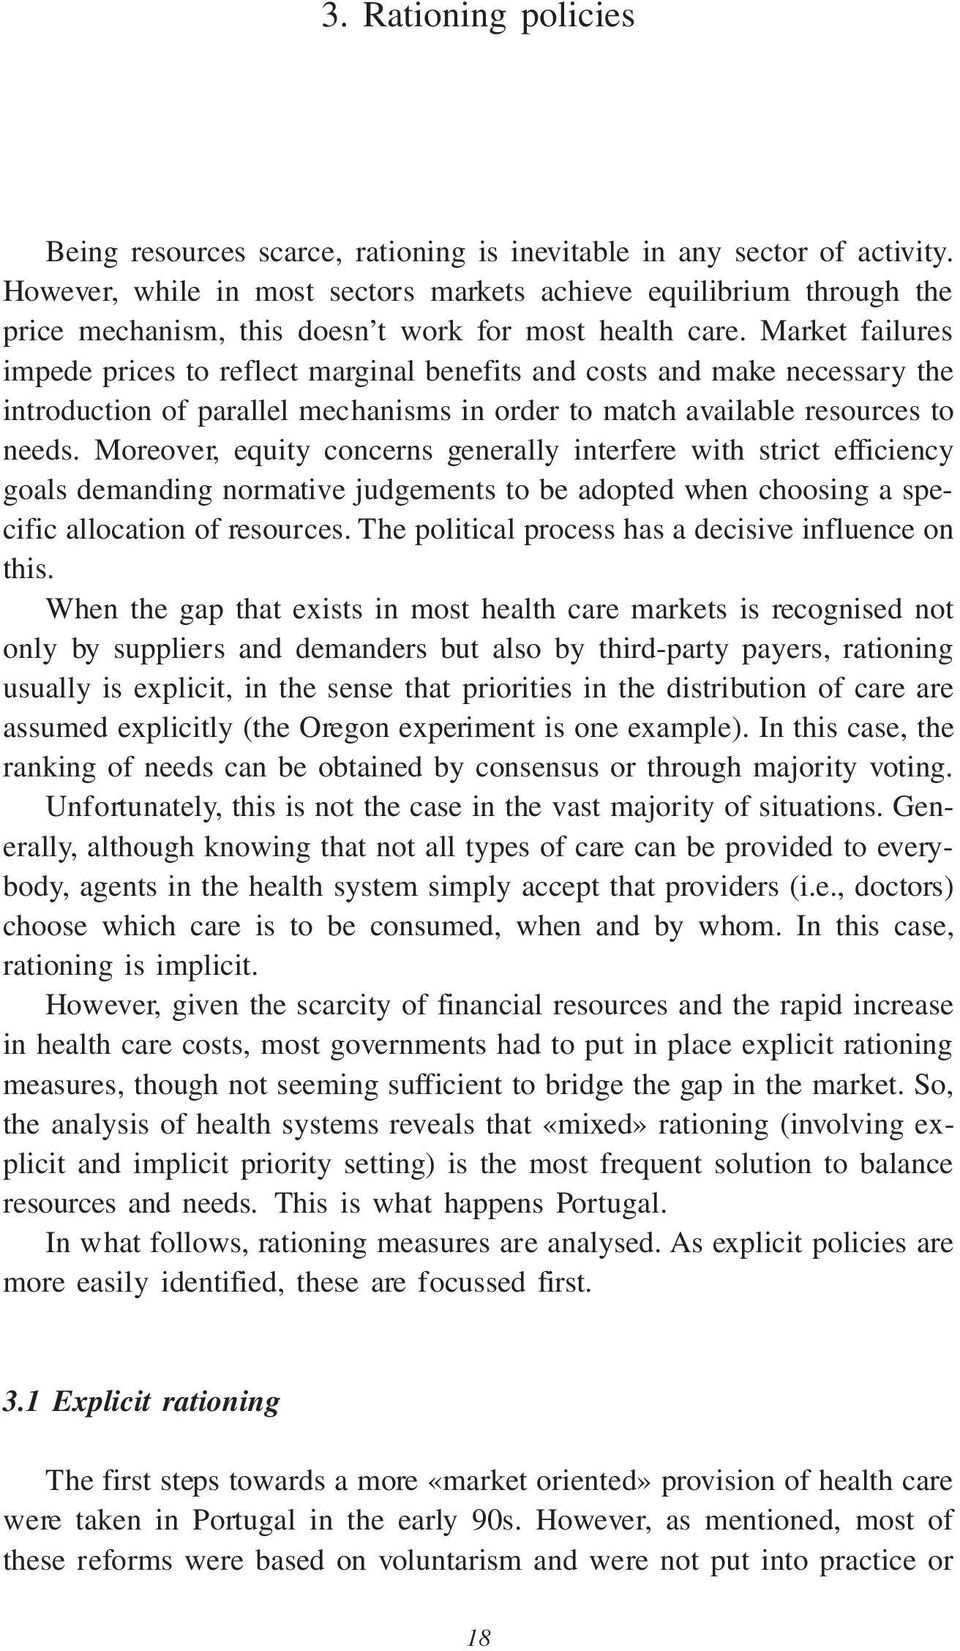 Market failures impede prices to reflect marginal benefits and costs and make necessary the introduction of parallel mechanisms in order to match available resources to needs.